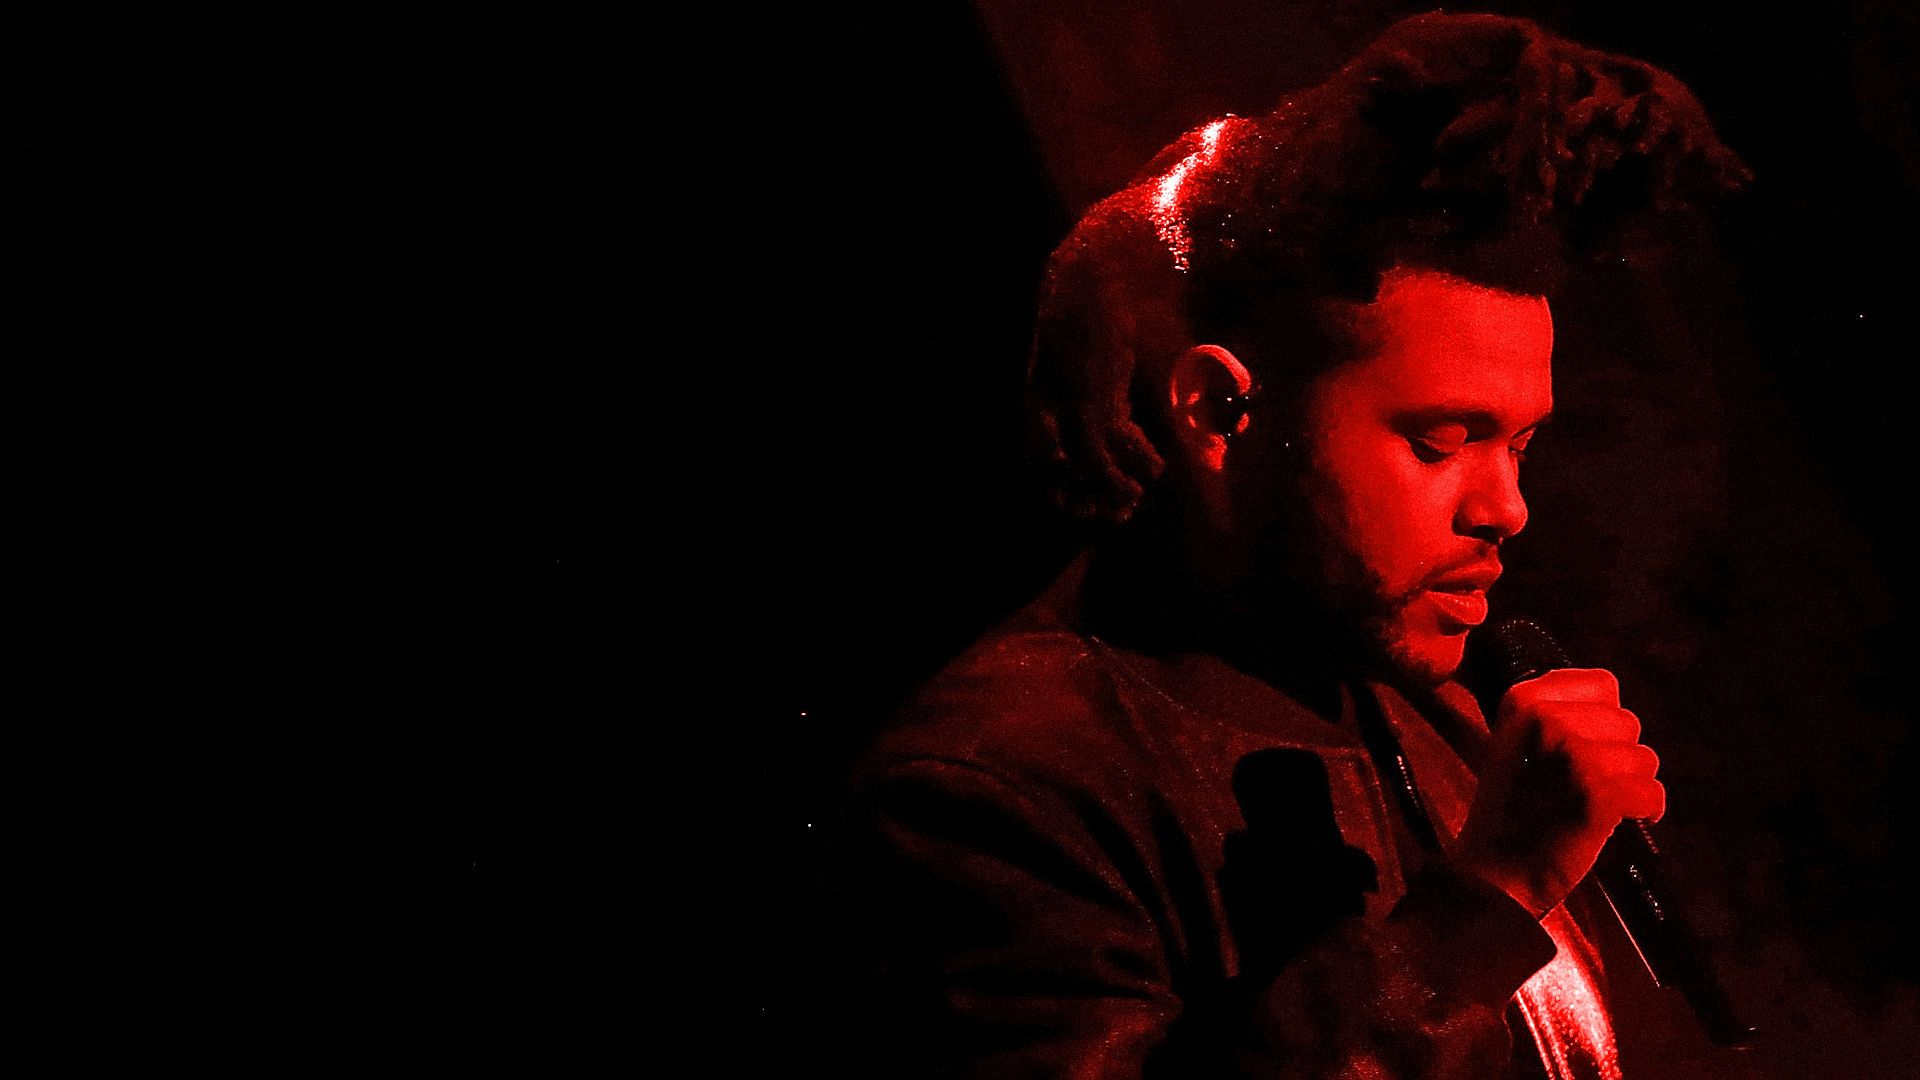 The Weeknd 4k Wallpapers Top Free The Weeknd 4k Backgrounds Wallpaperaccess